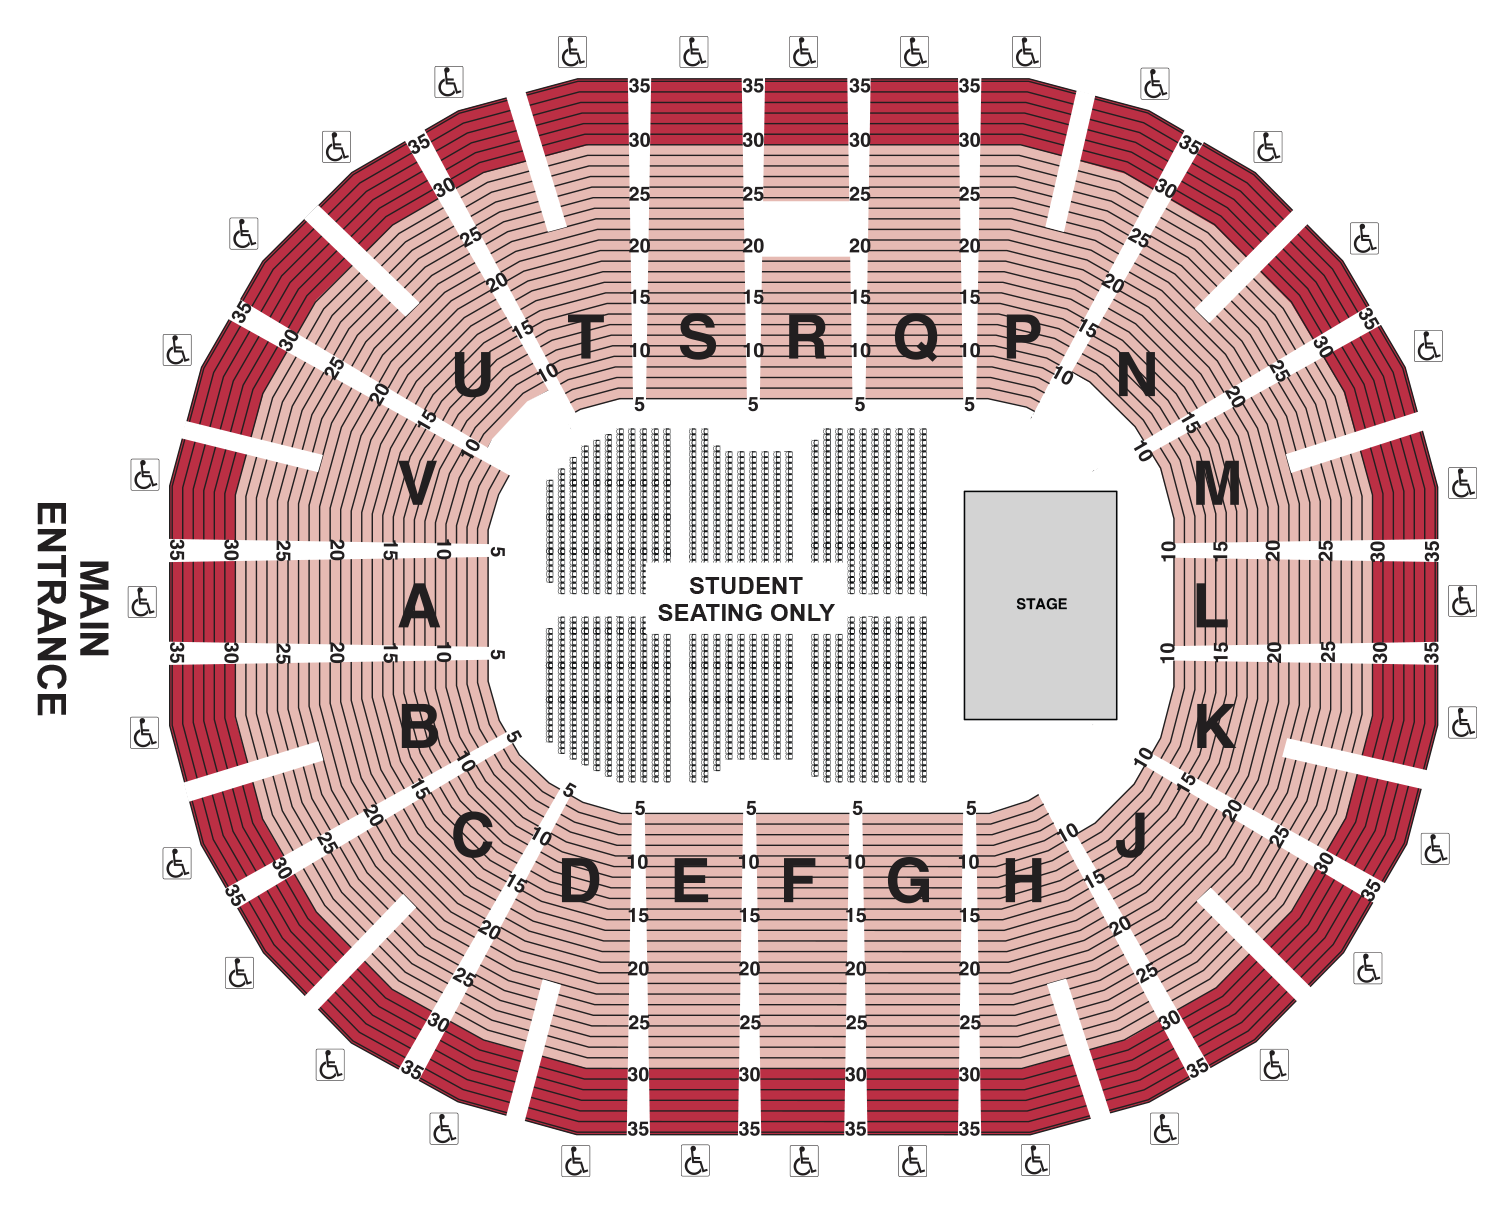 Commencement Seating Chart